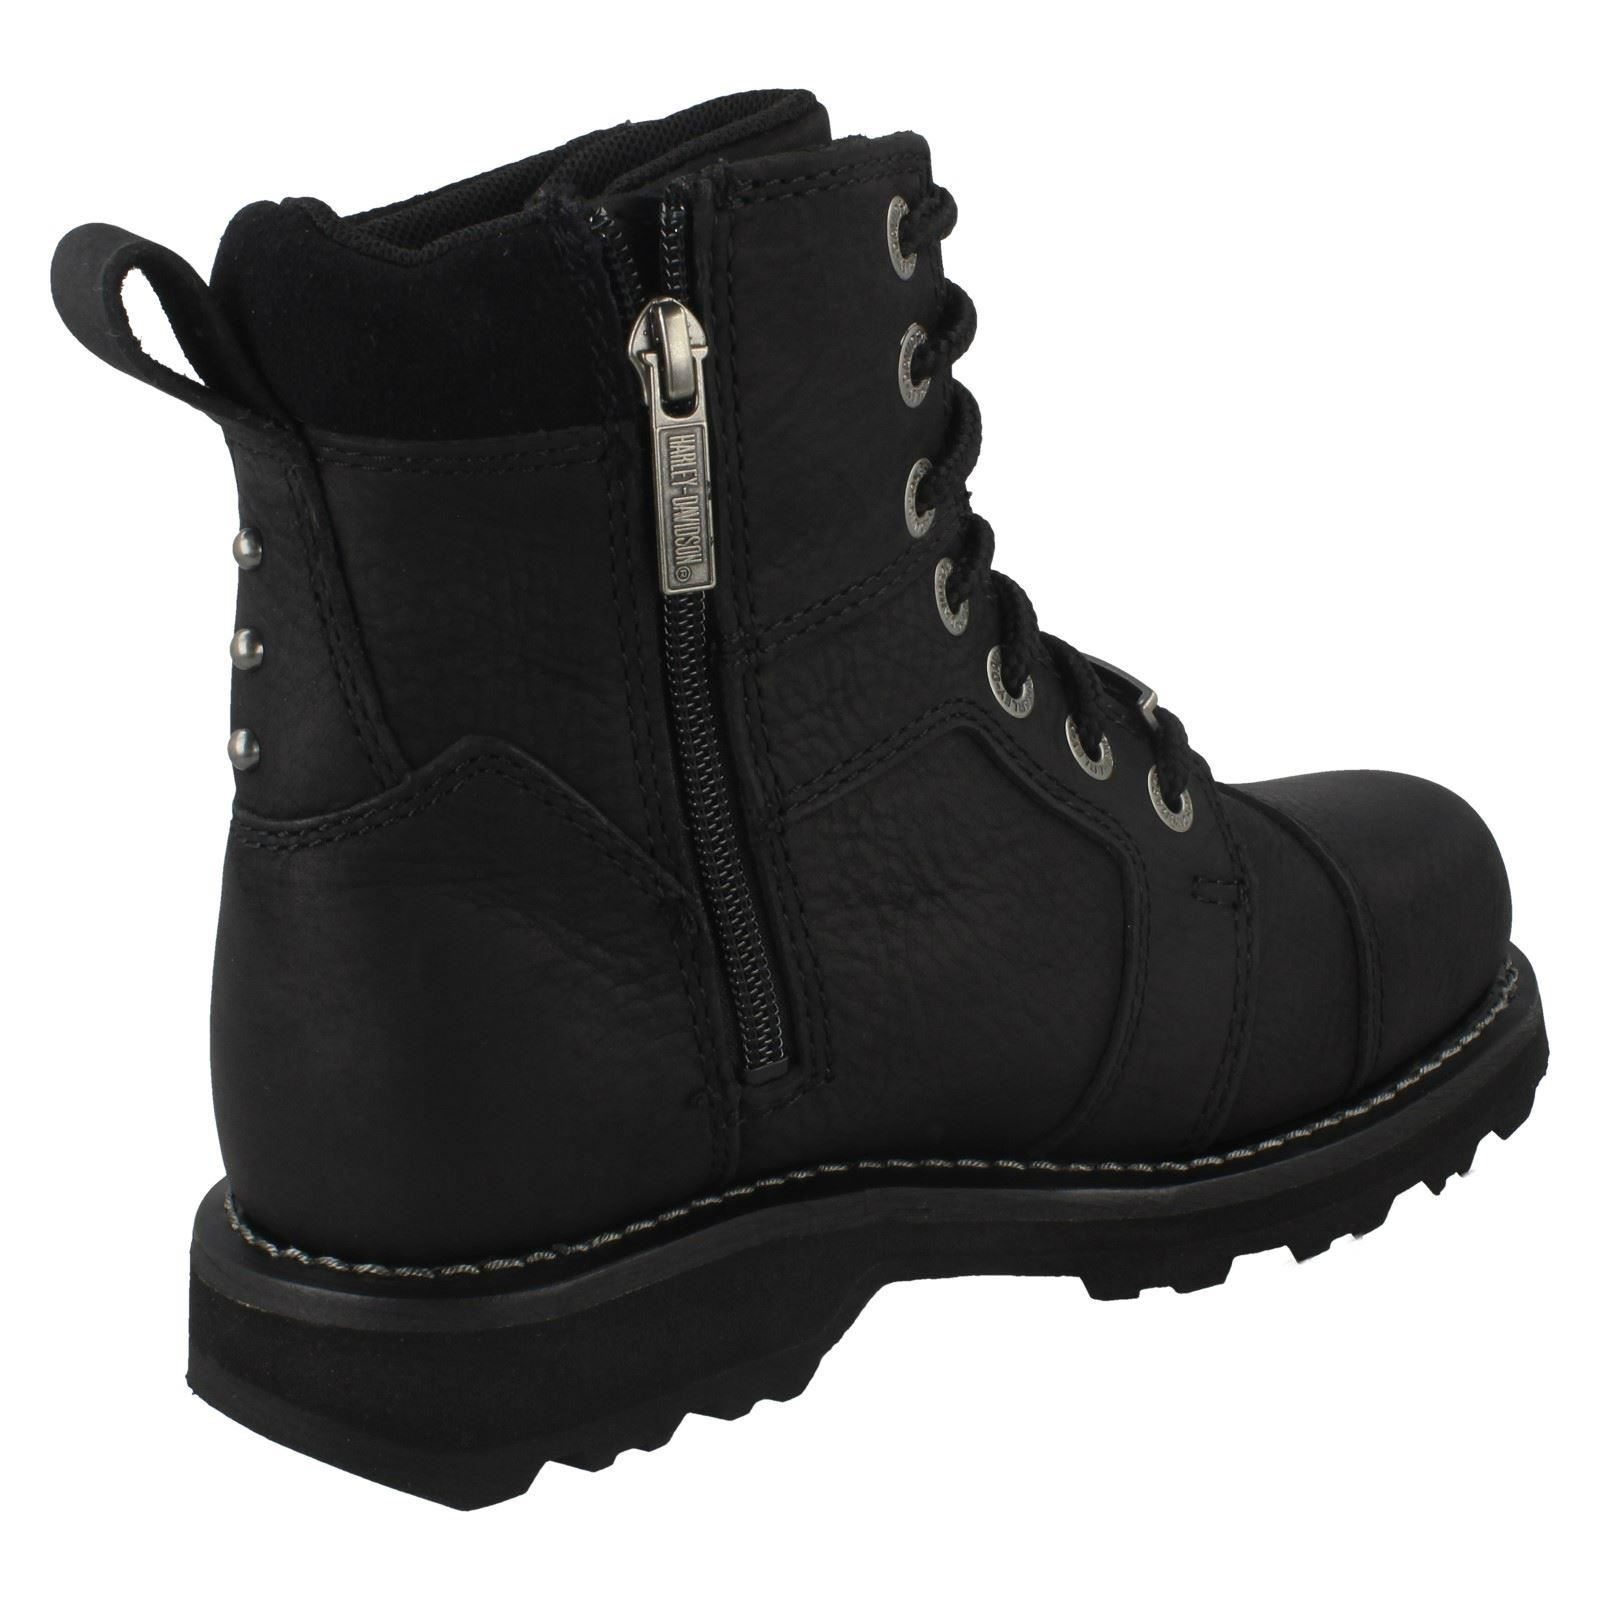 damen harley davidson biker boots 39 oakleigh 39 ebay. Black Bedroom Furniture Sets. Home Design Ideas